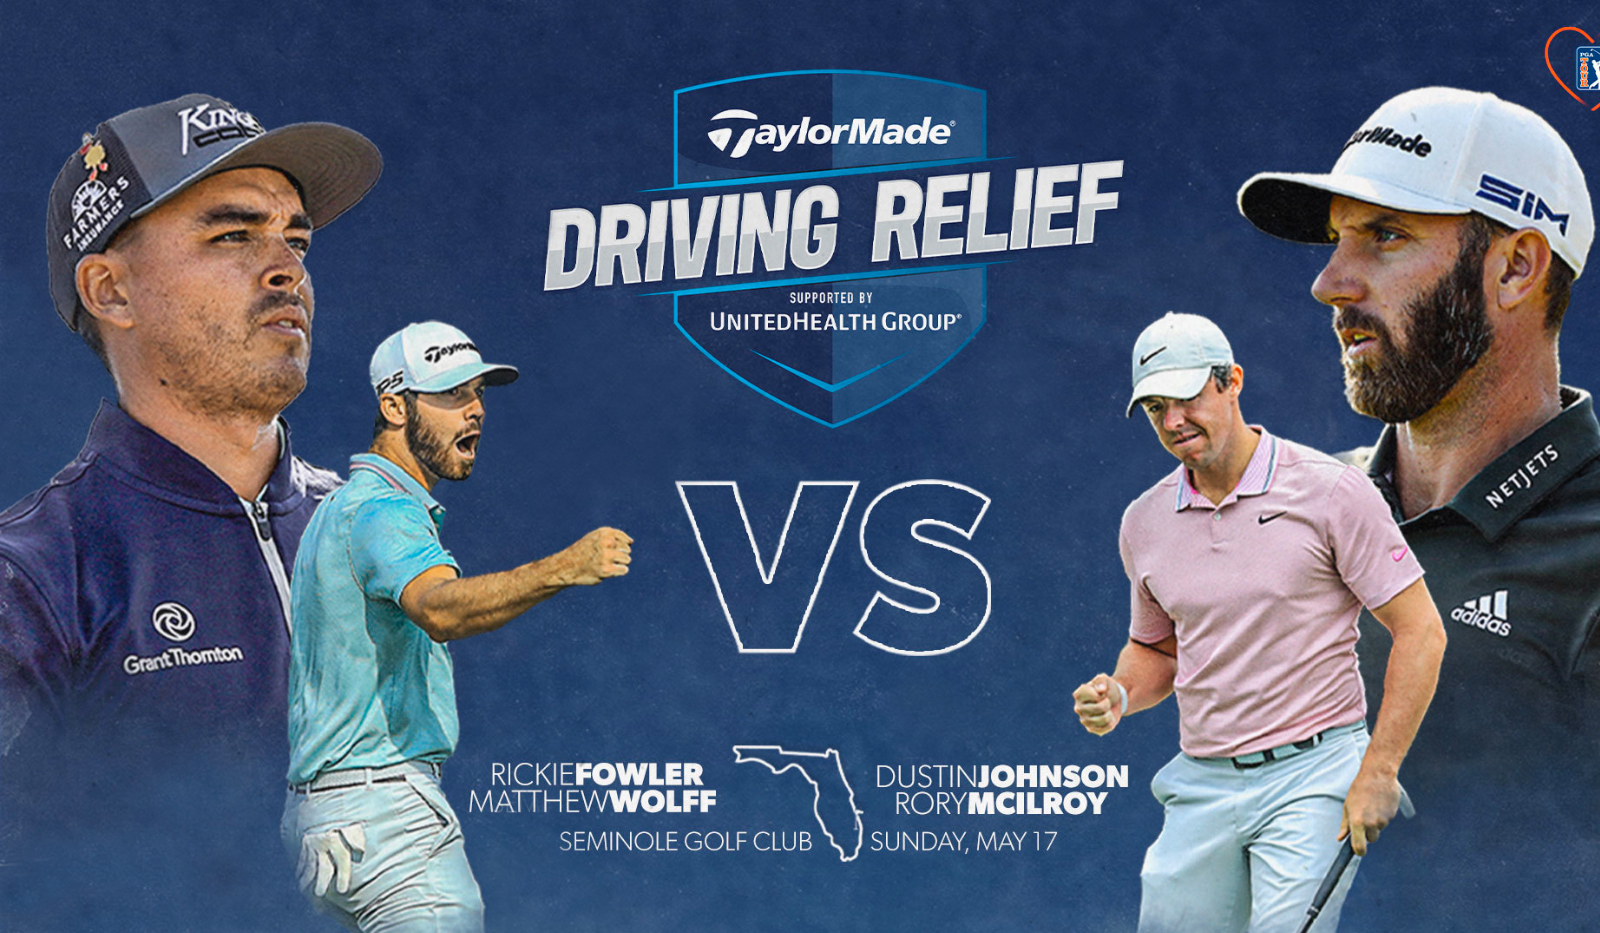 PGA TOUR TaylorMade Driving Relief May 17th